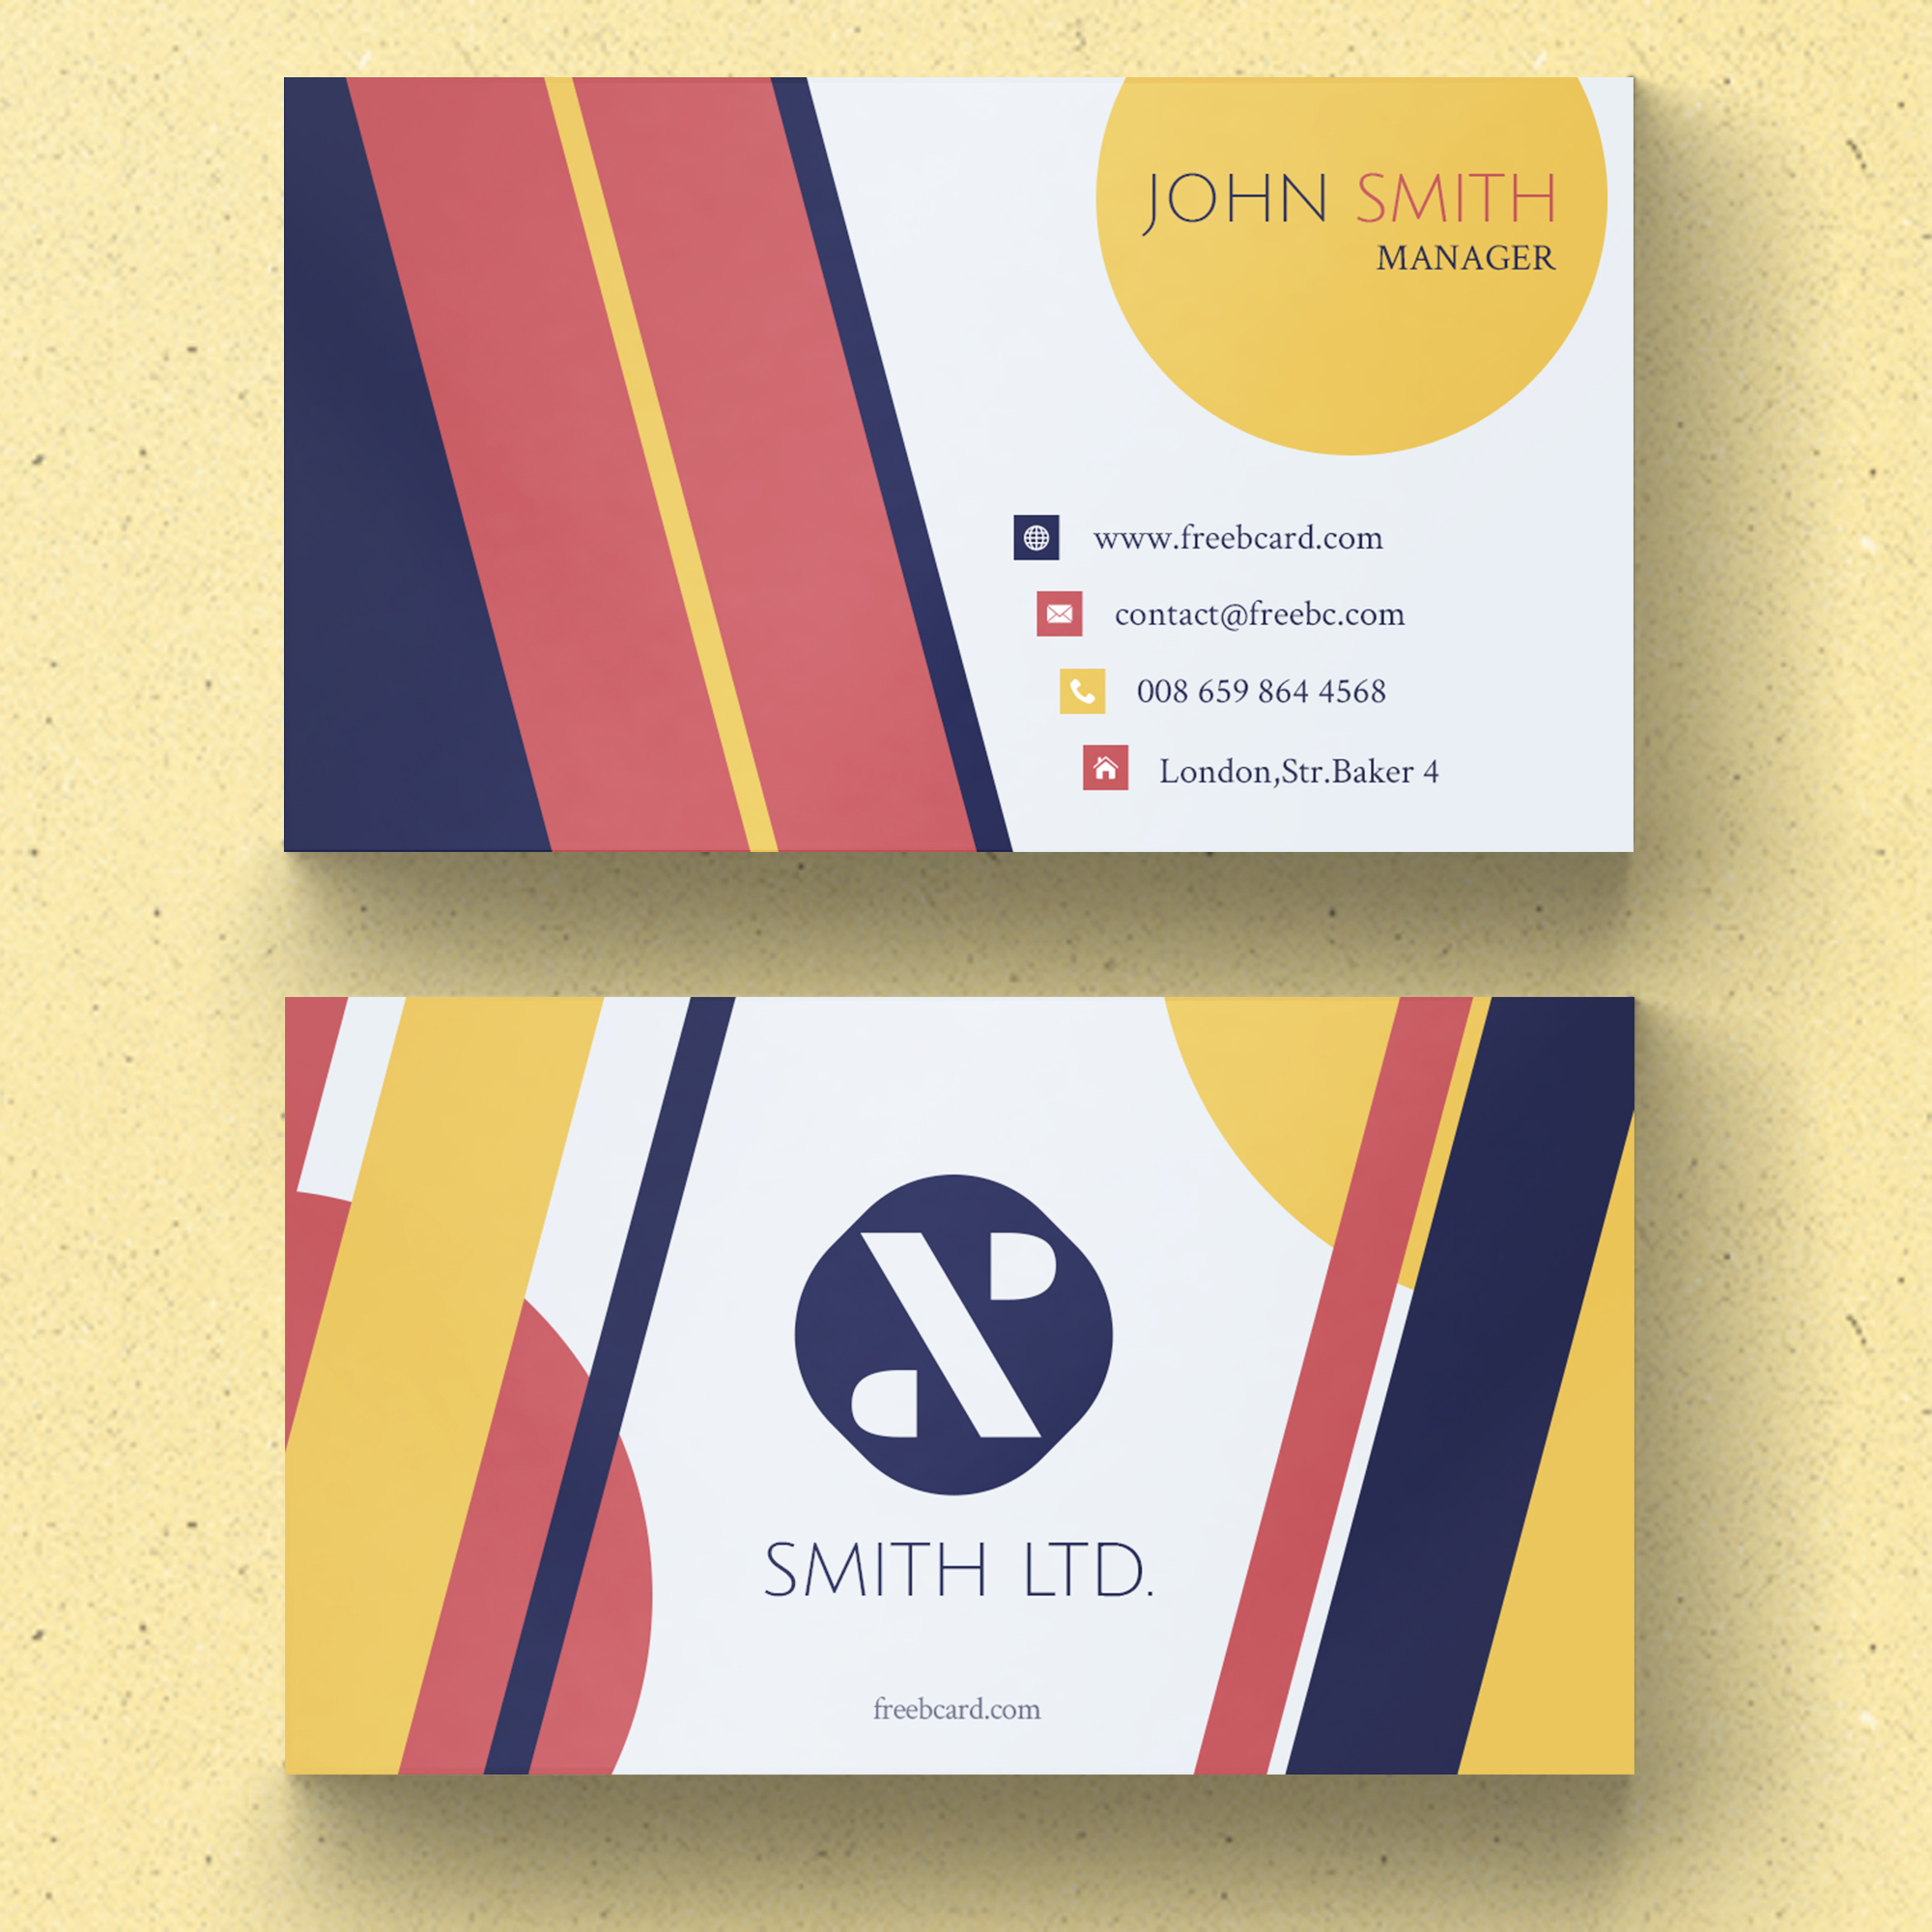 Corporate business card with colorful geometric shapes